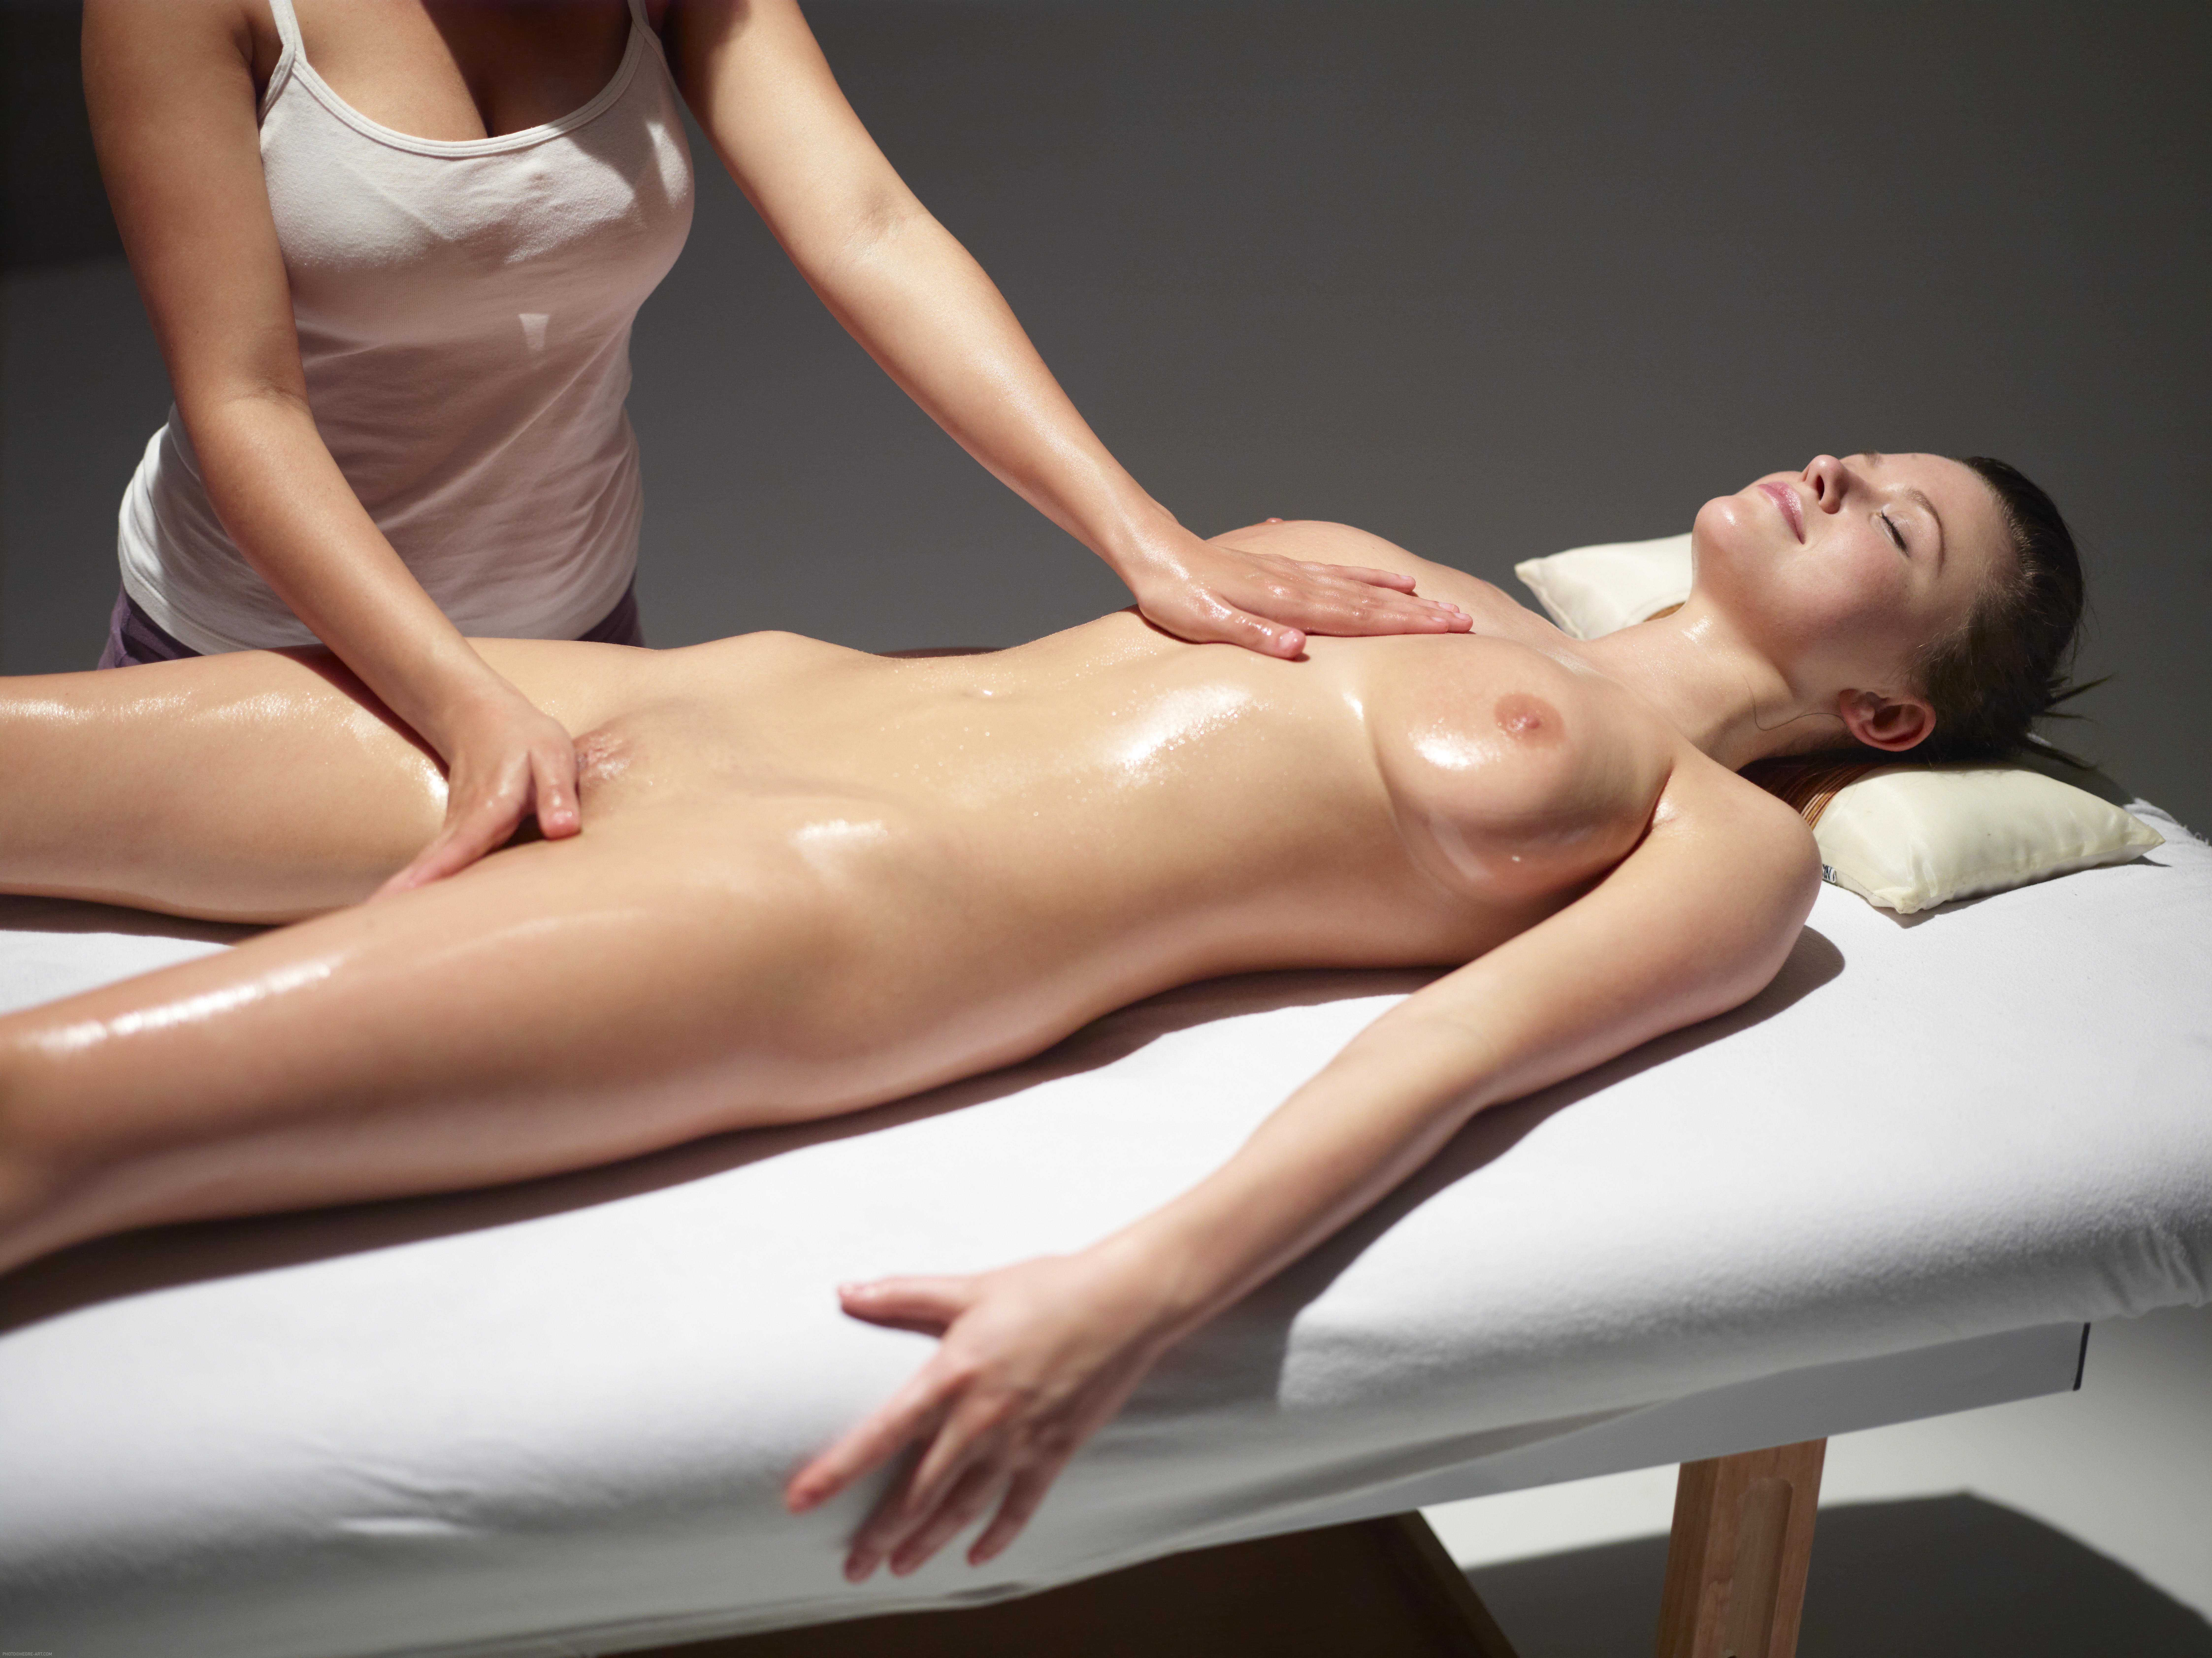 neuk date errotic body massage